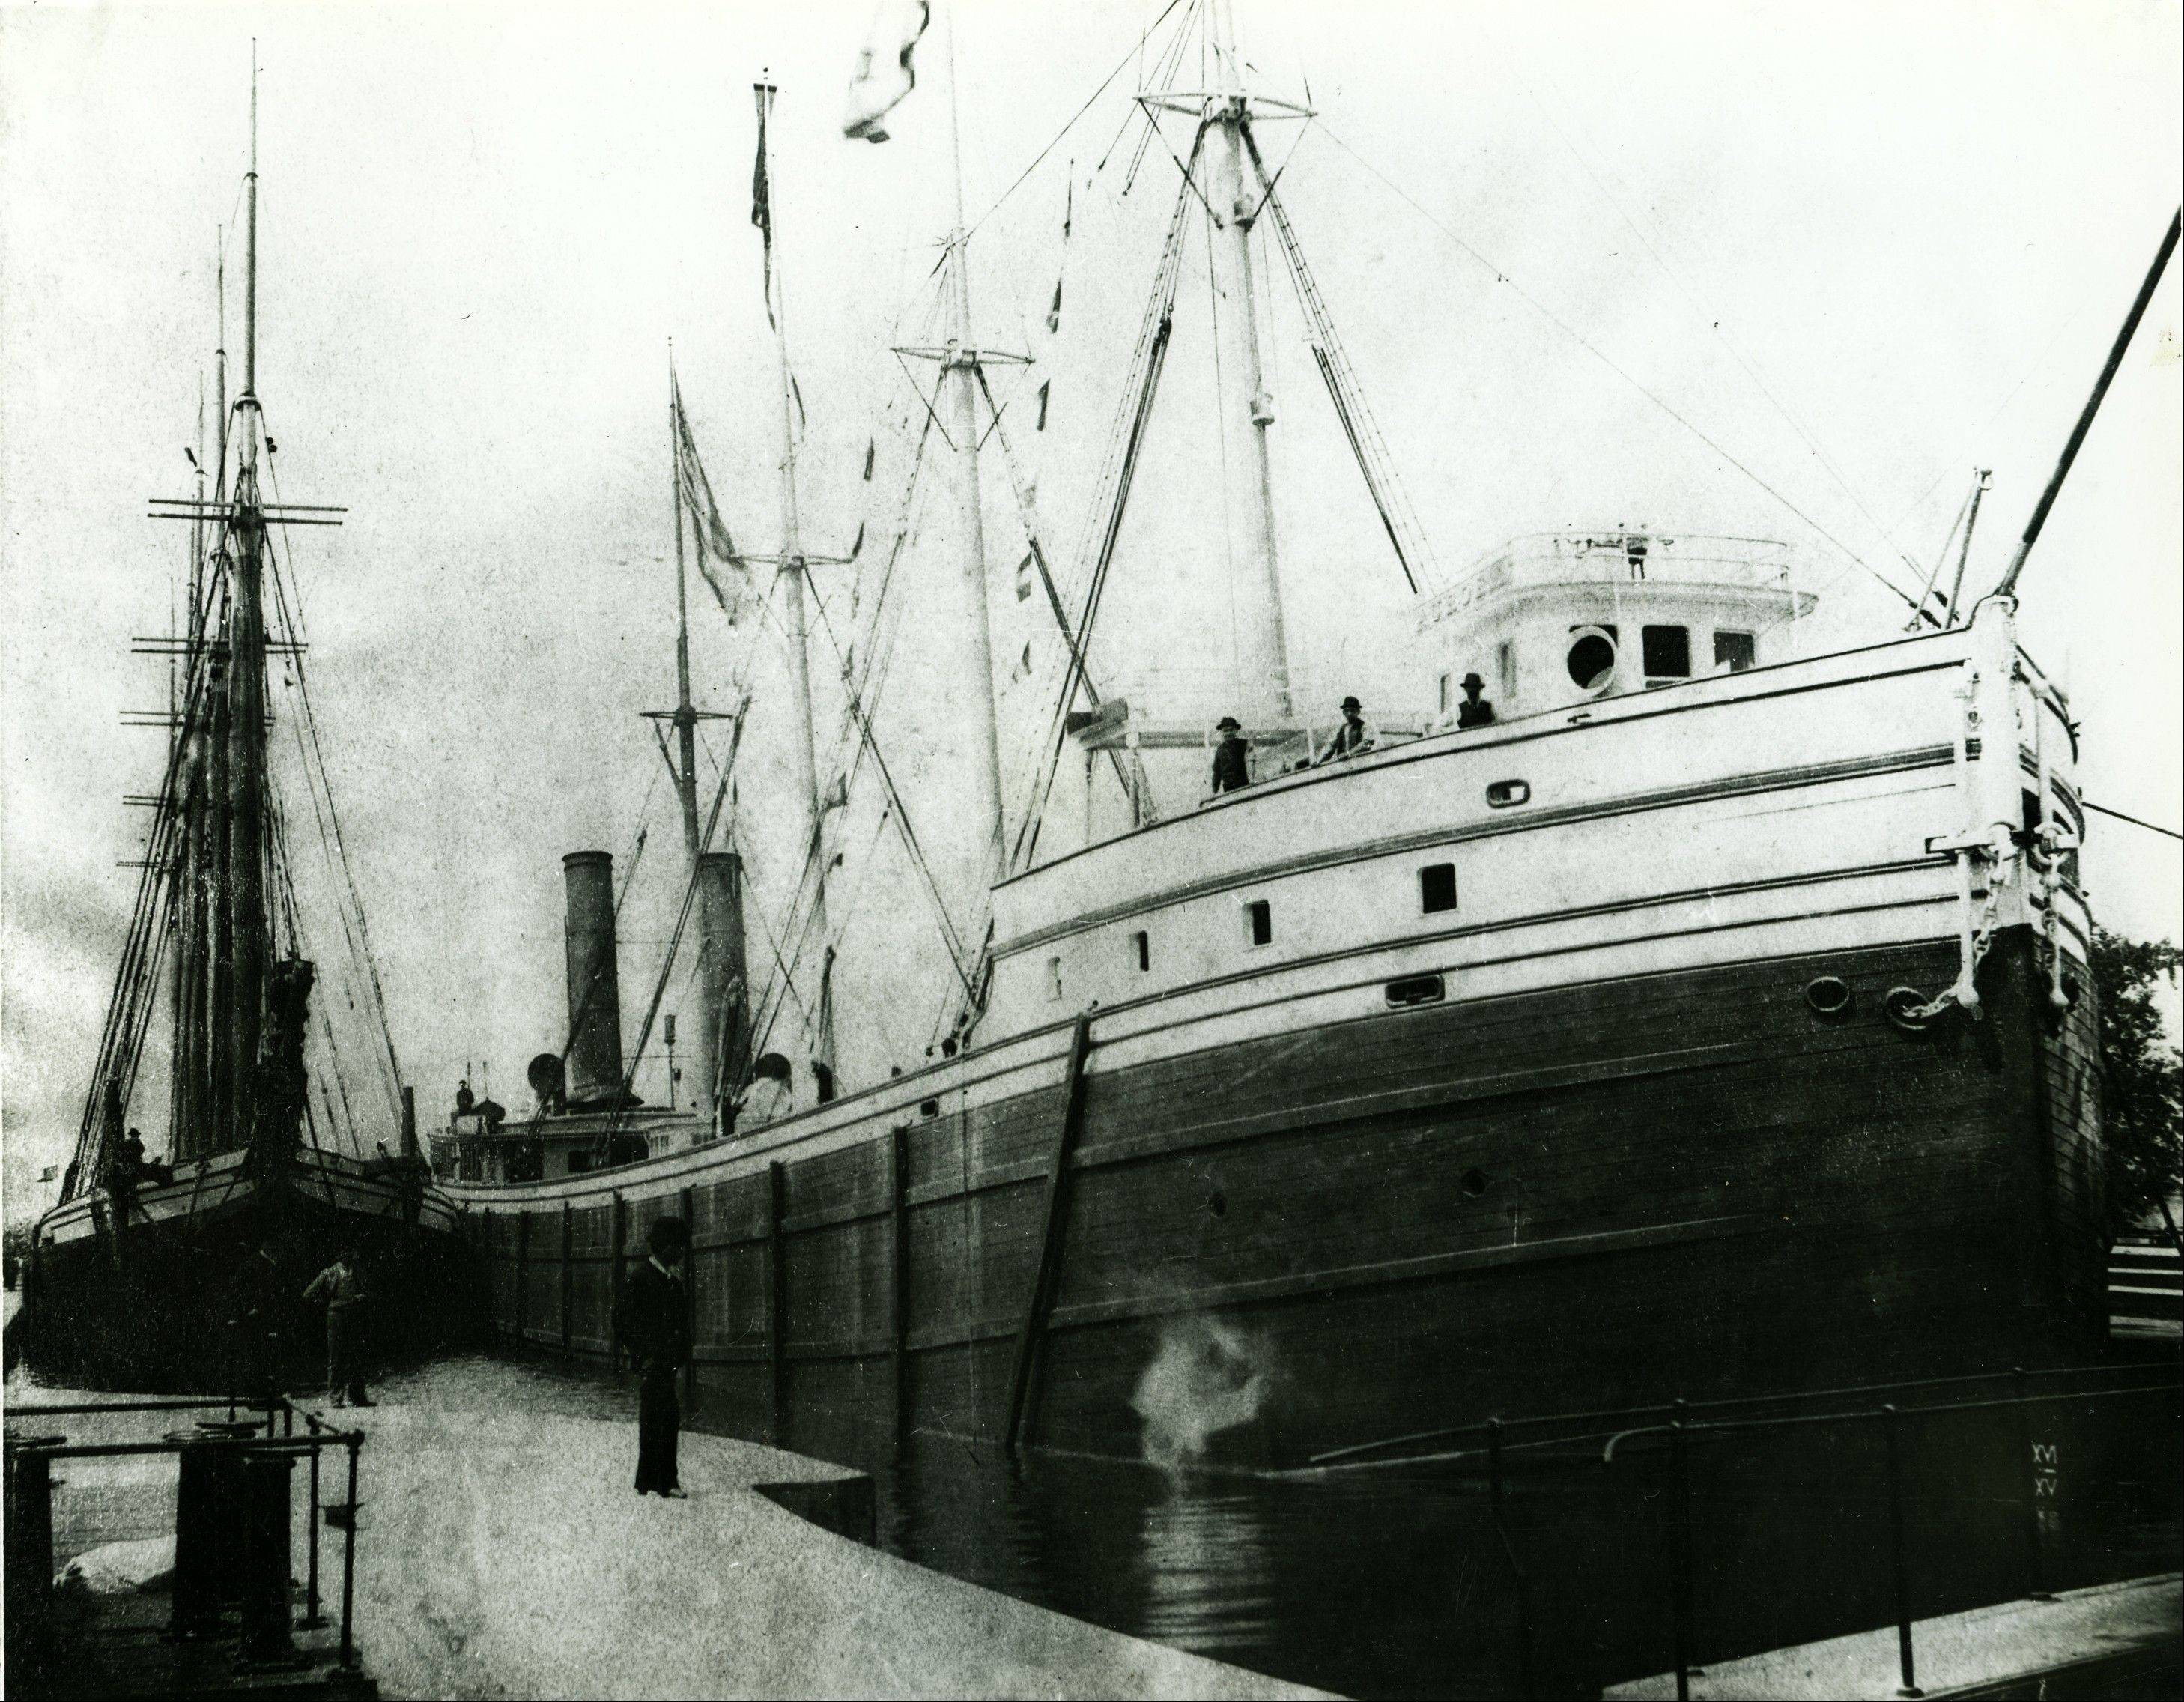 This Dec. 11, 2012 photo shows a painting of the ship Aurora from its sailing days provided by the Thunder Bay National Marine Sanctuary in Muskegon, Mich. The remains of the wooden steamer built 125 years ago recently were uncovered in West Michigan because of lower Great Lakes water levels.